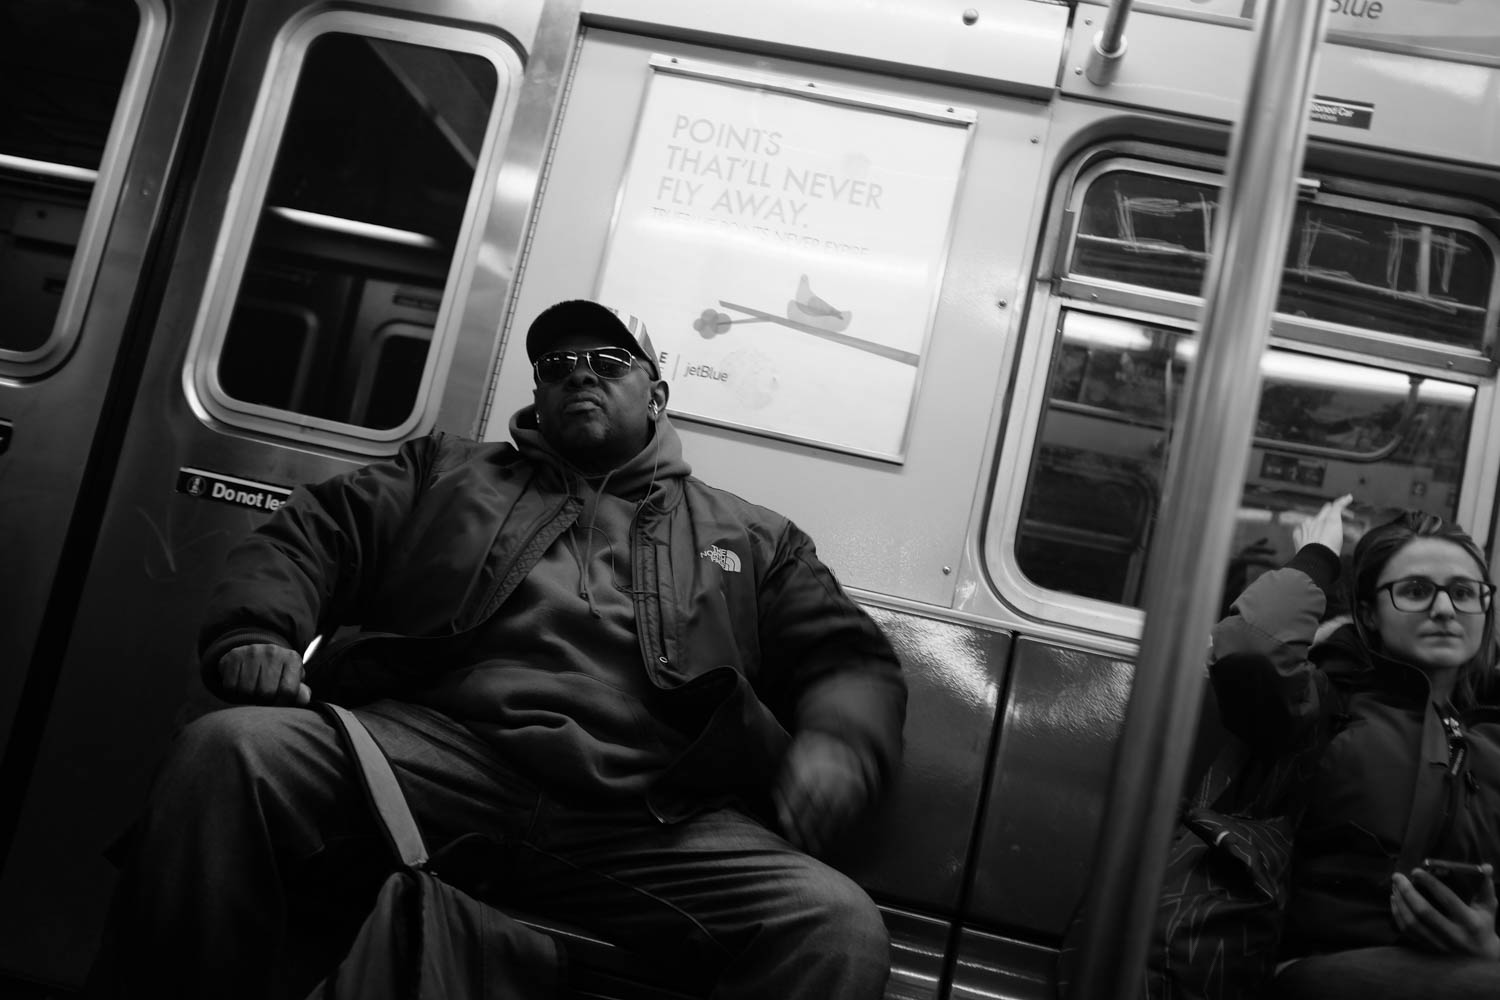 A man riding the New York City subway.